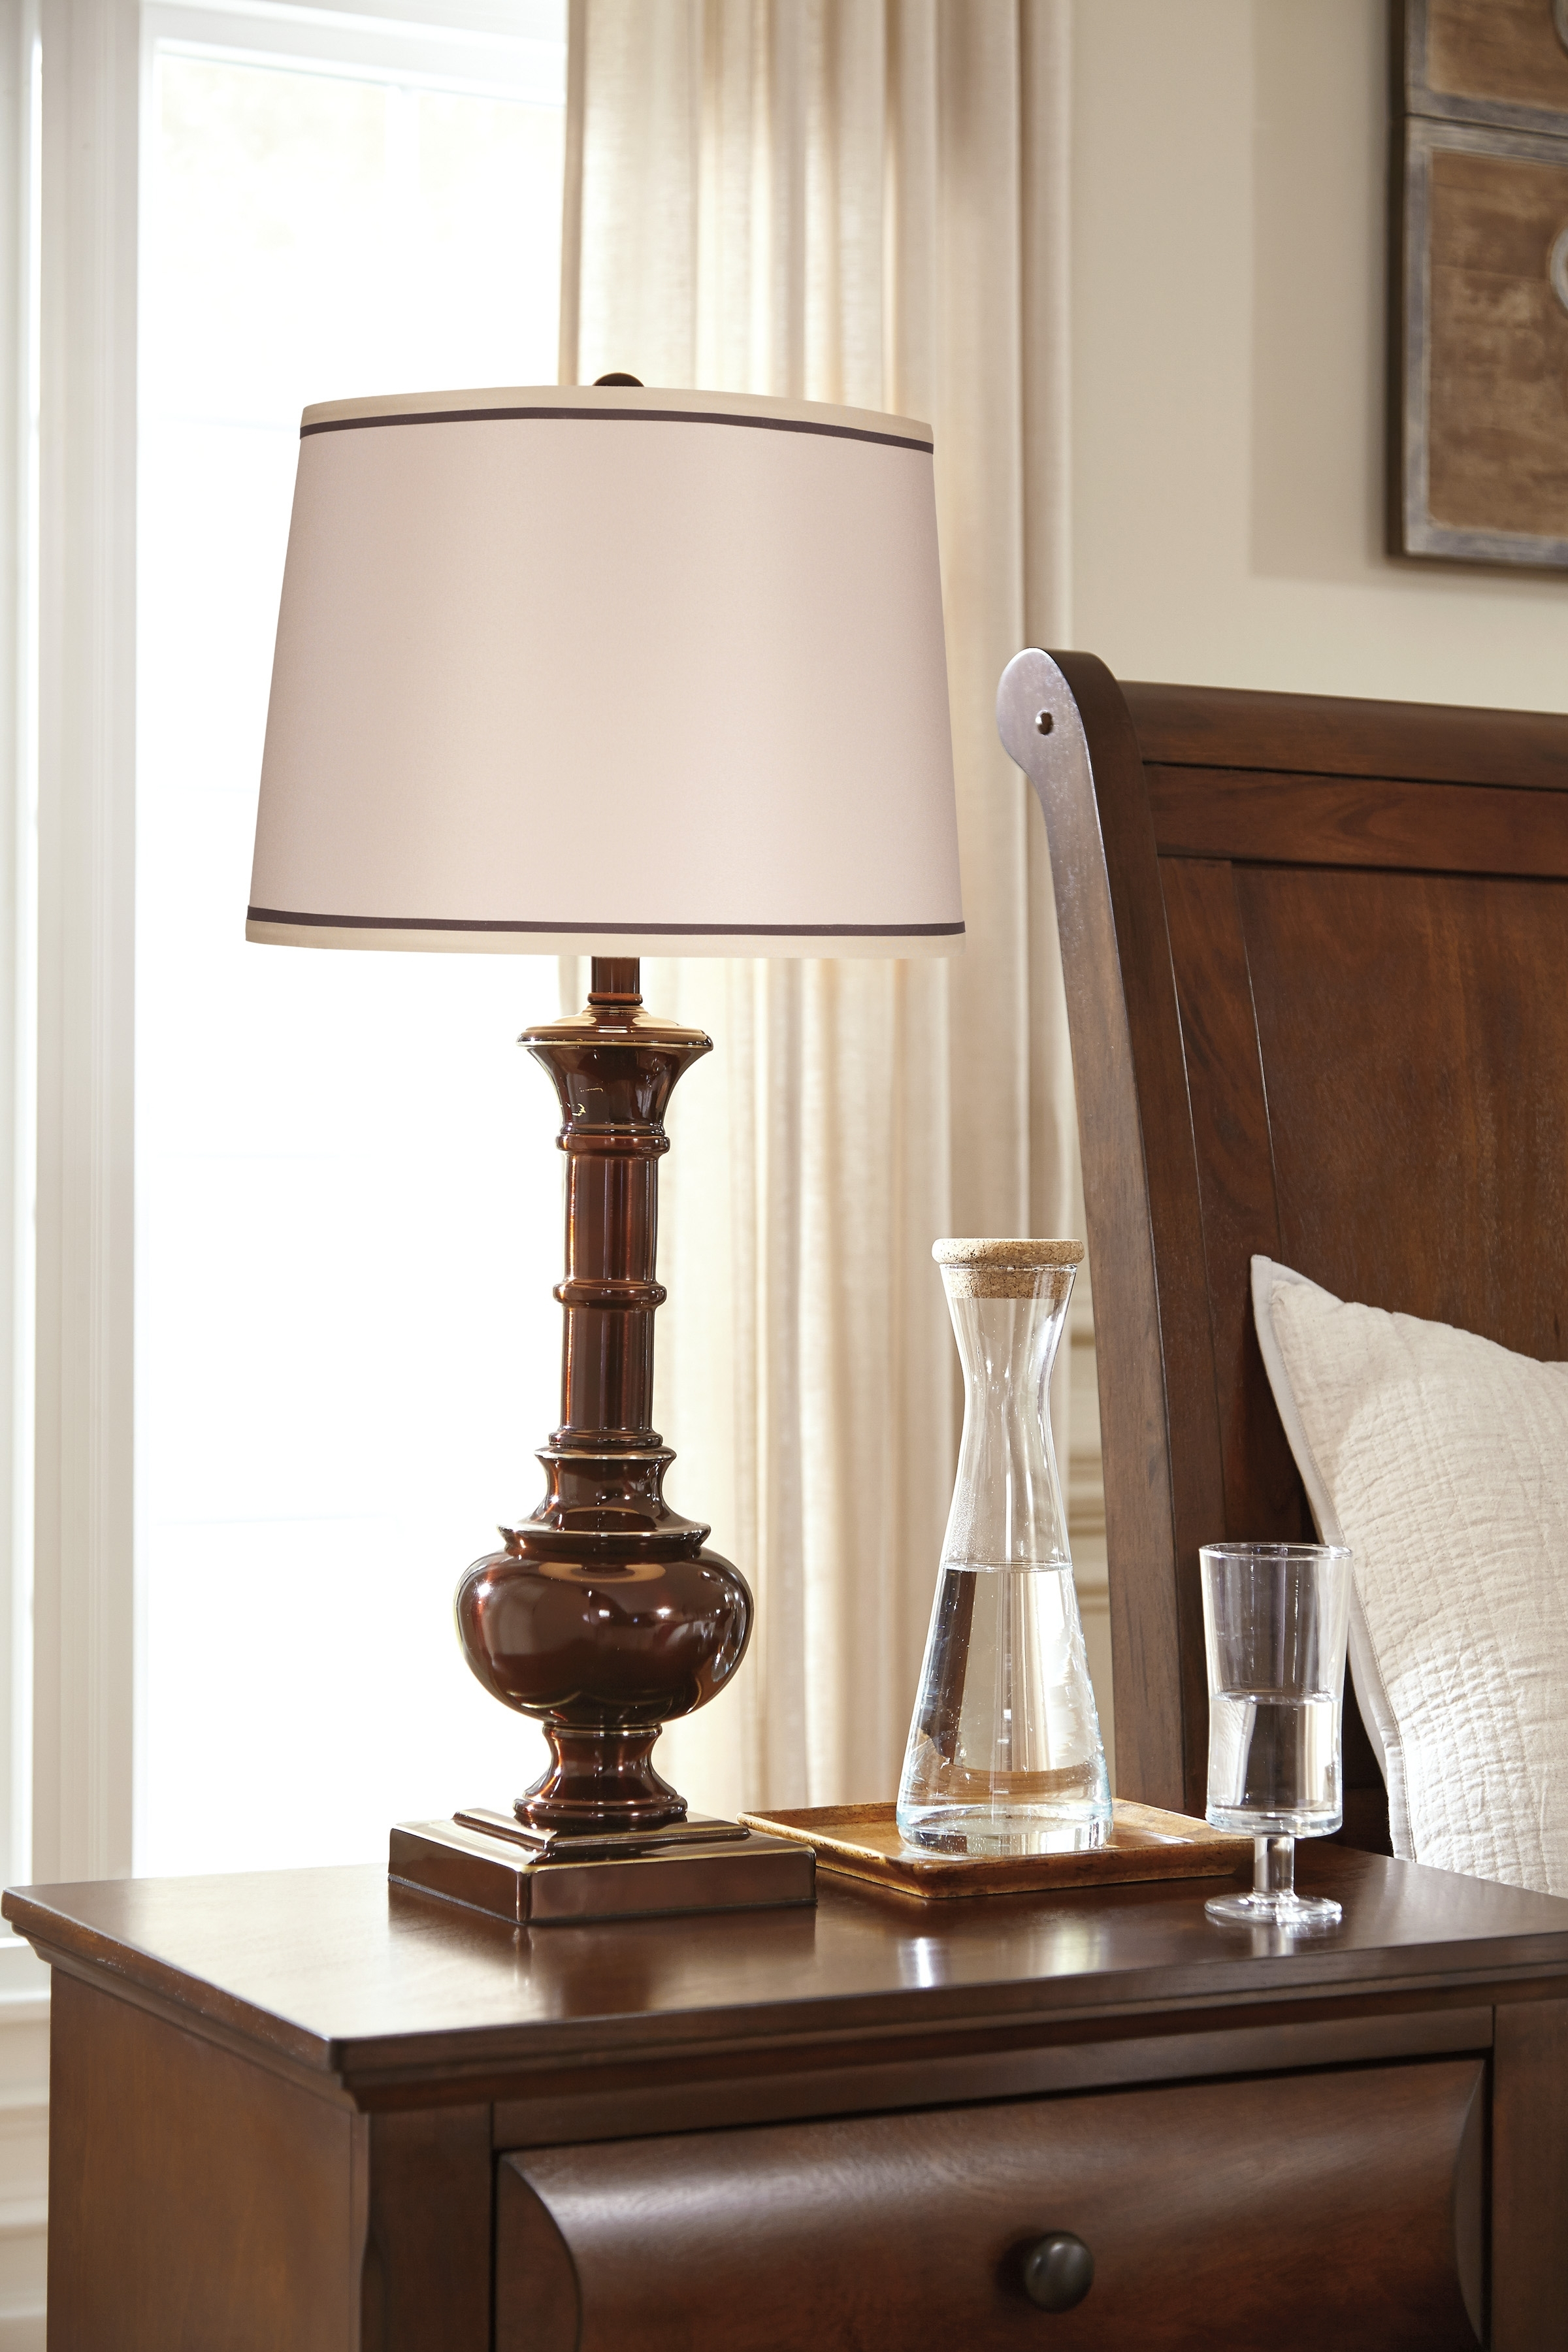 Popular Lamp : Living Room Table Lamps Creative Design Picture Target New With Country Living Room Table Lamps (View 10 of 15)